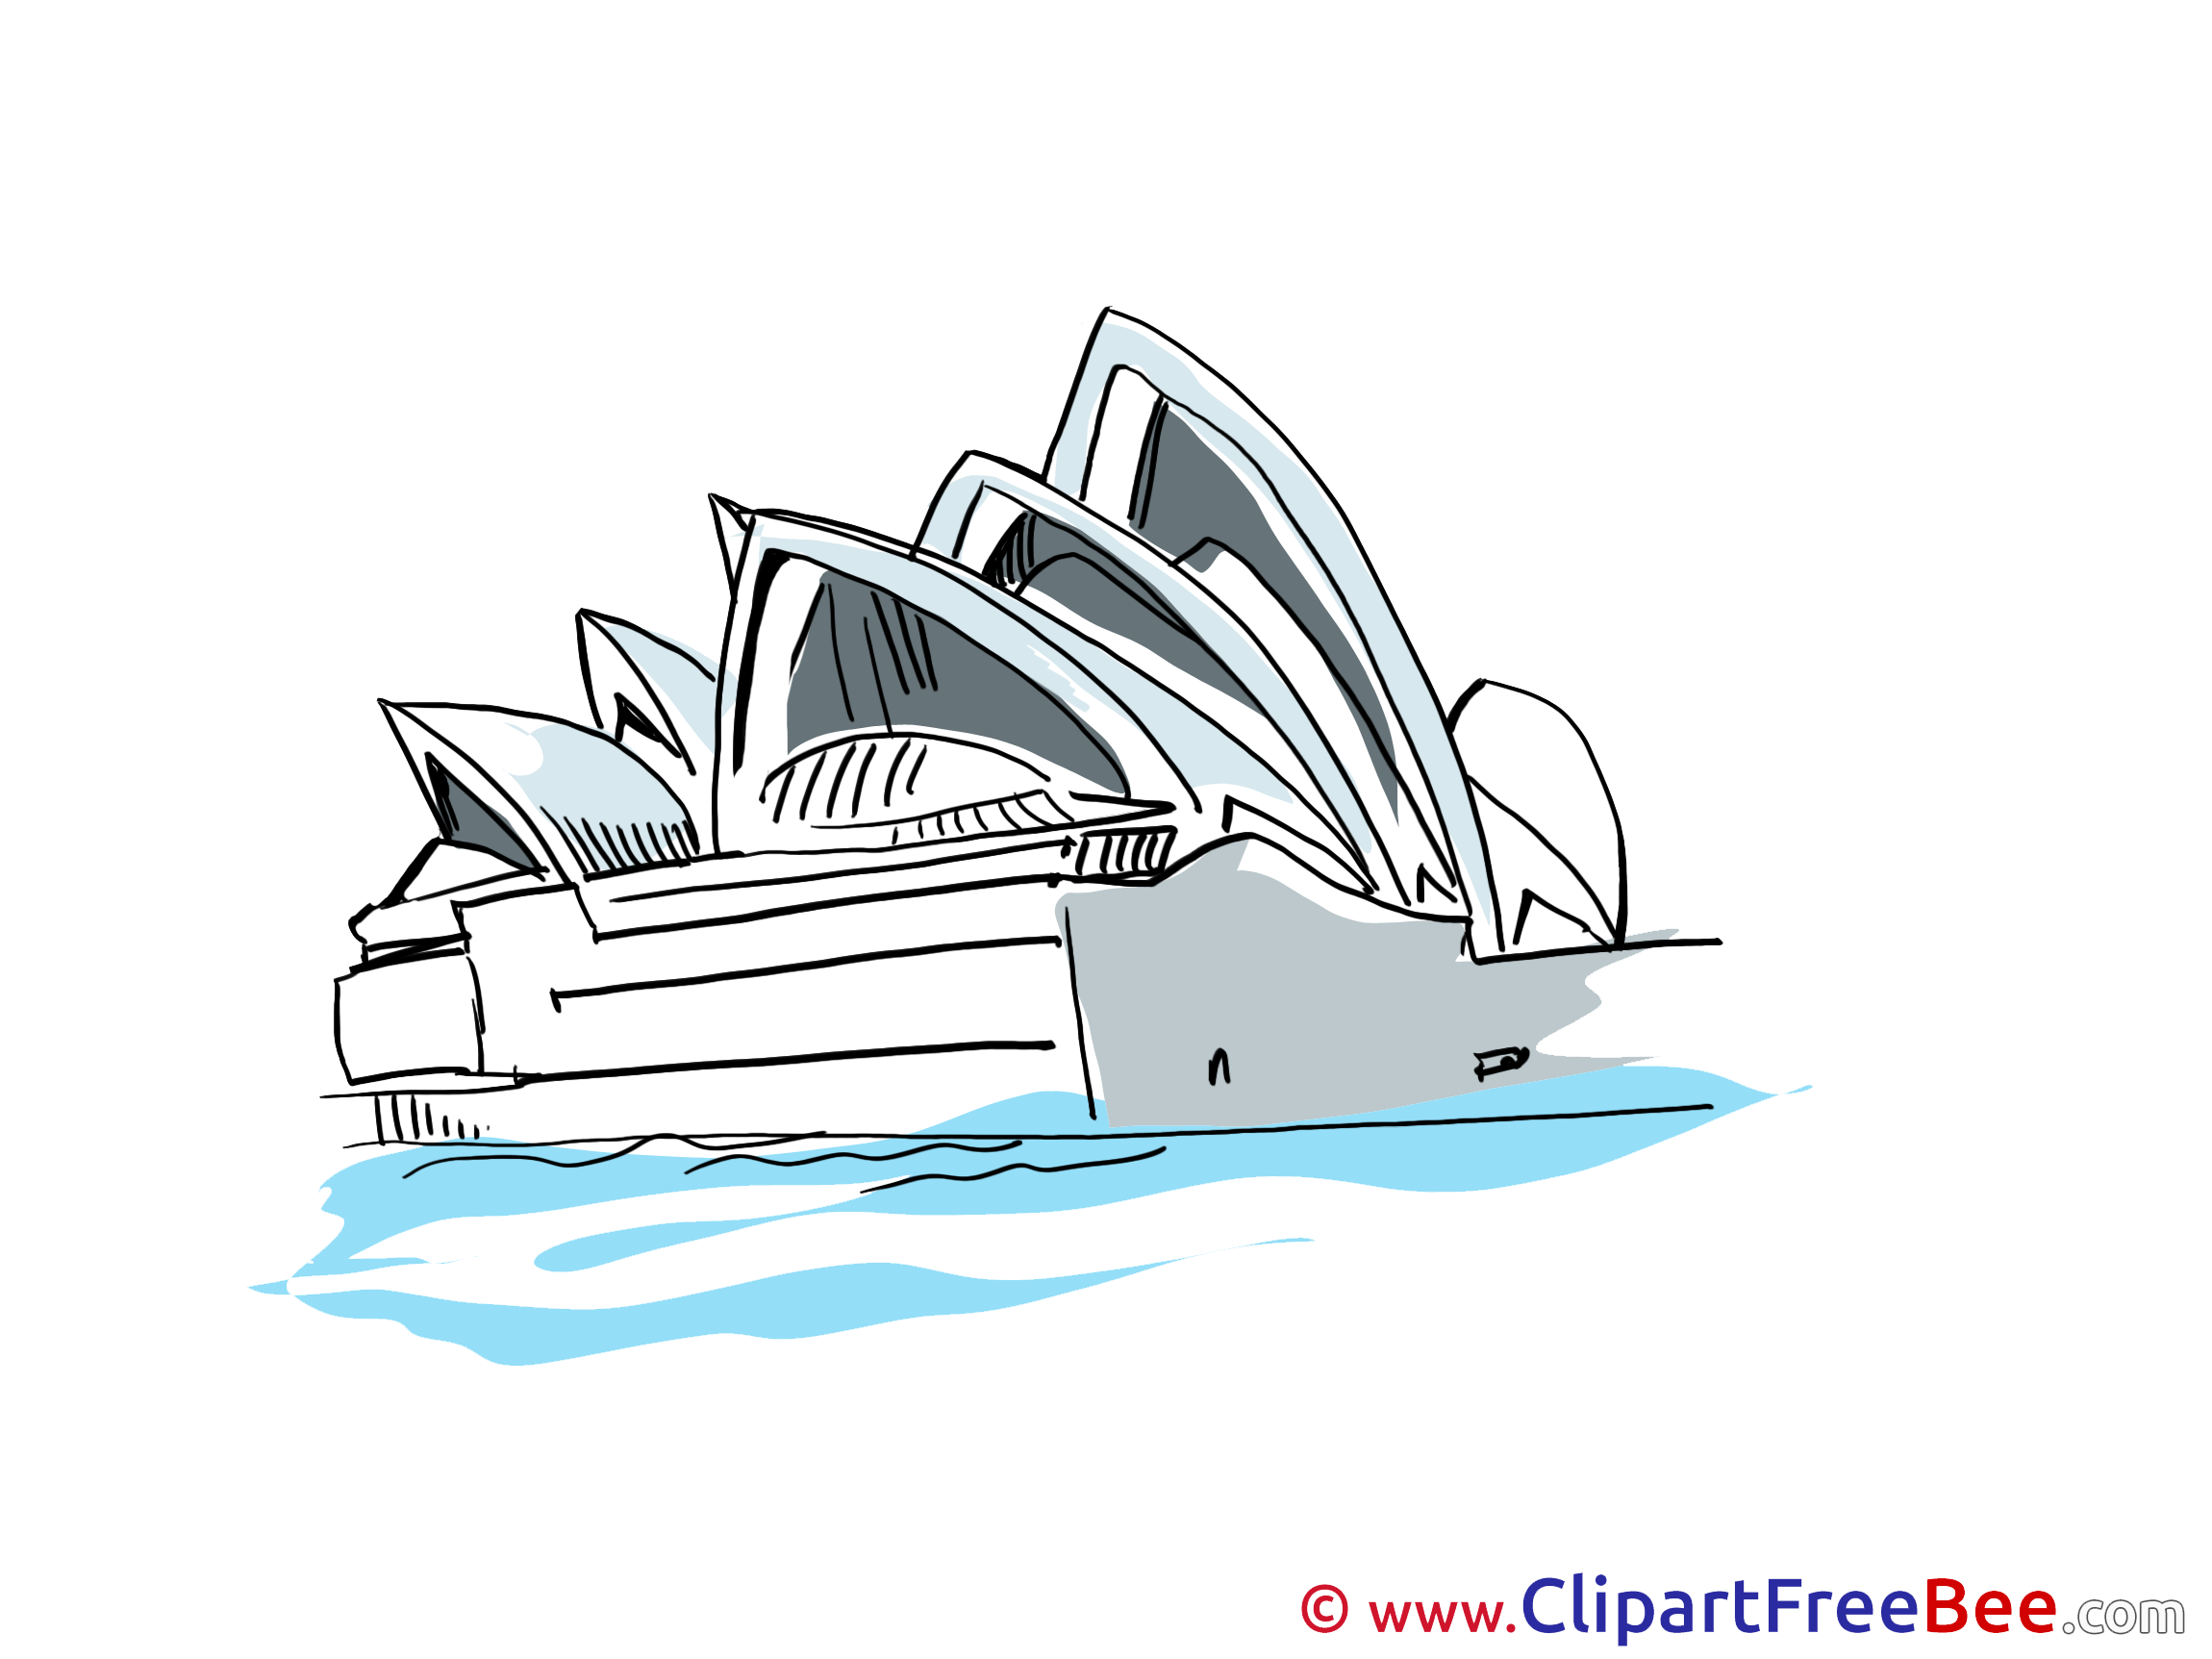 Opera Sydney Clipart free Image download.